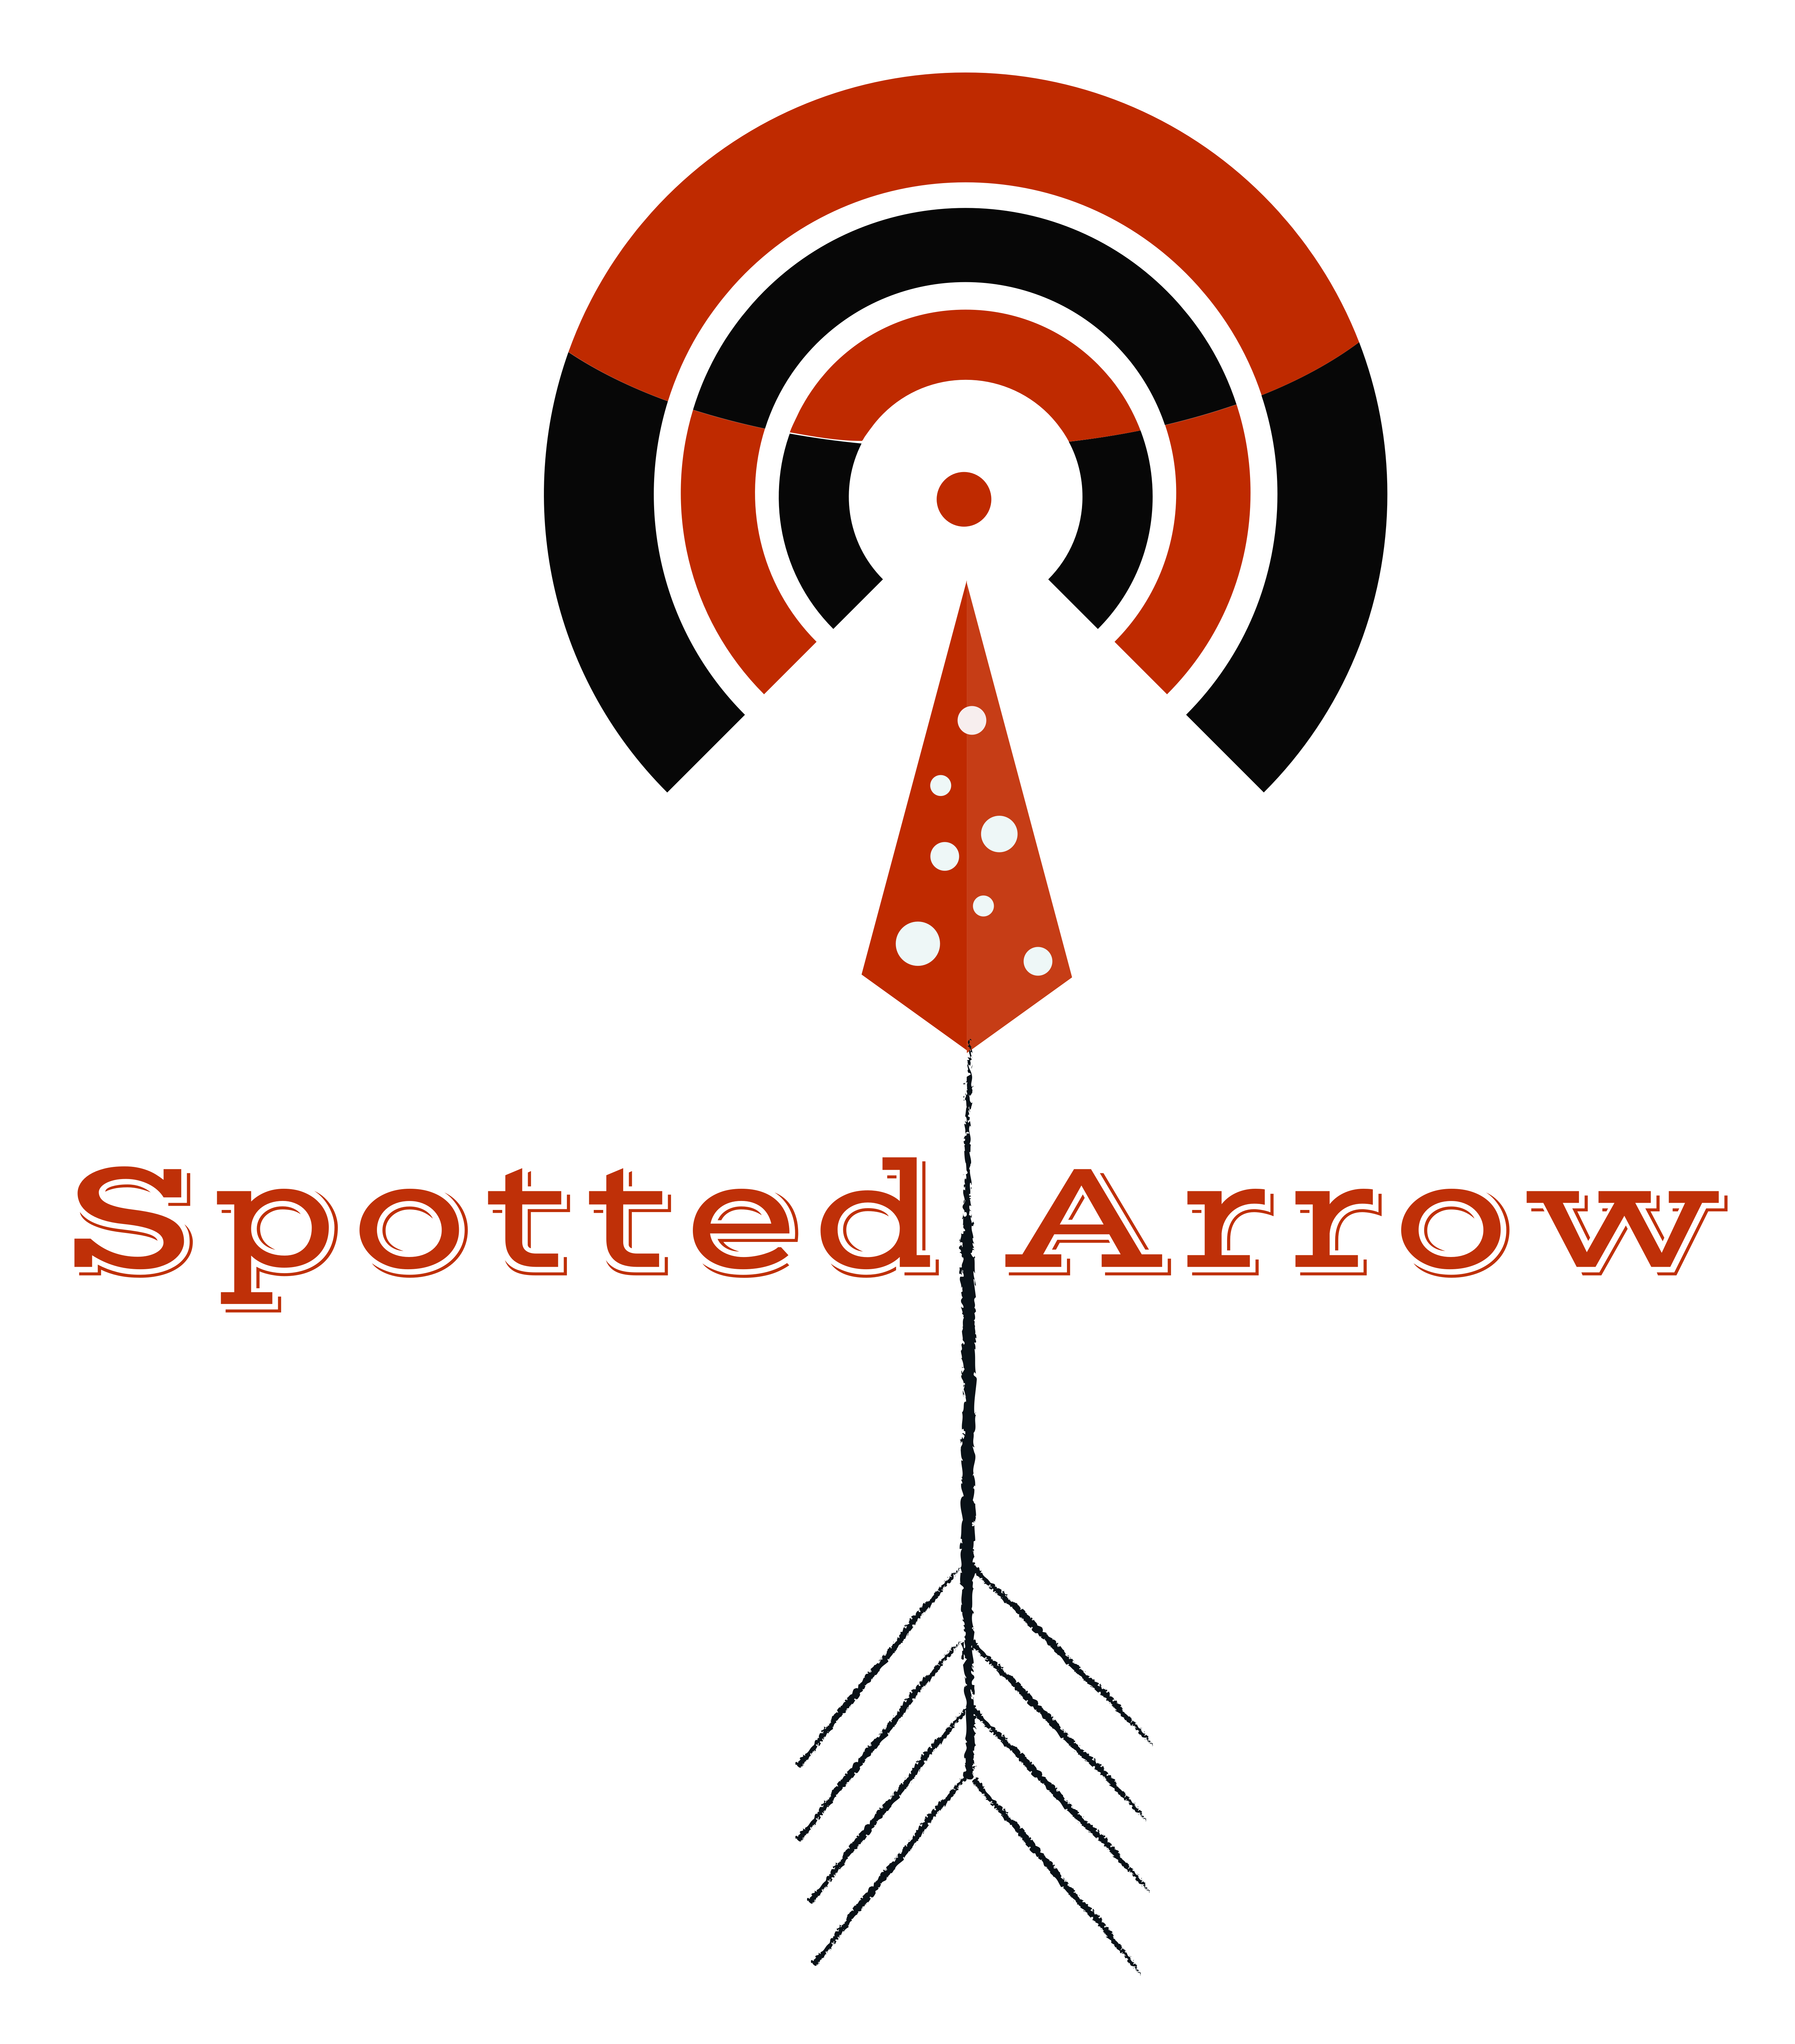 spotted-arrow